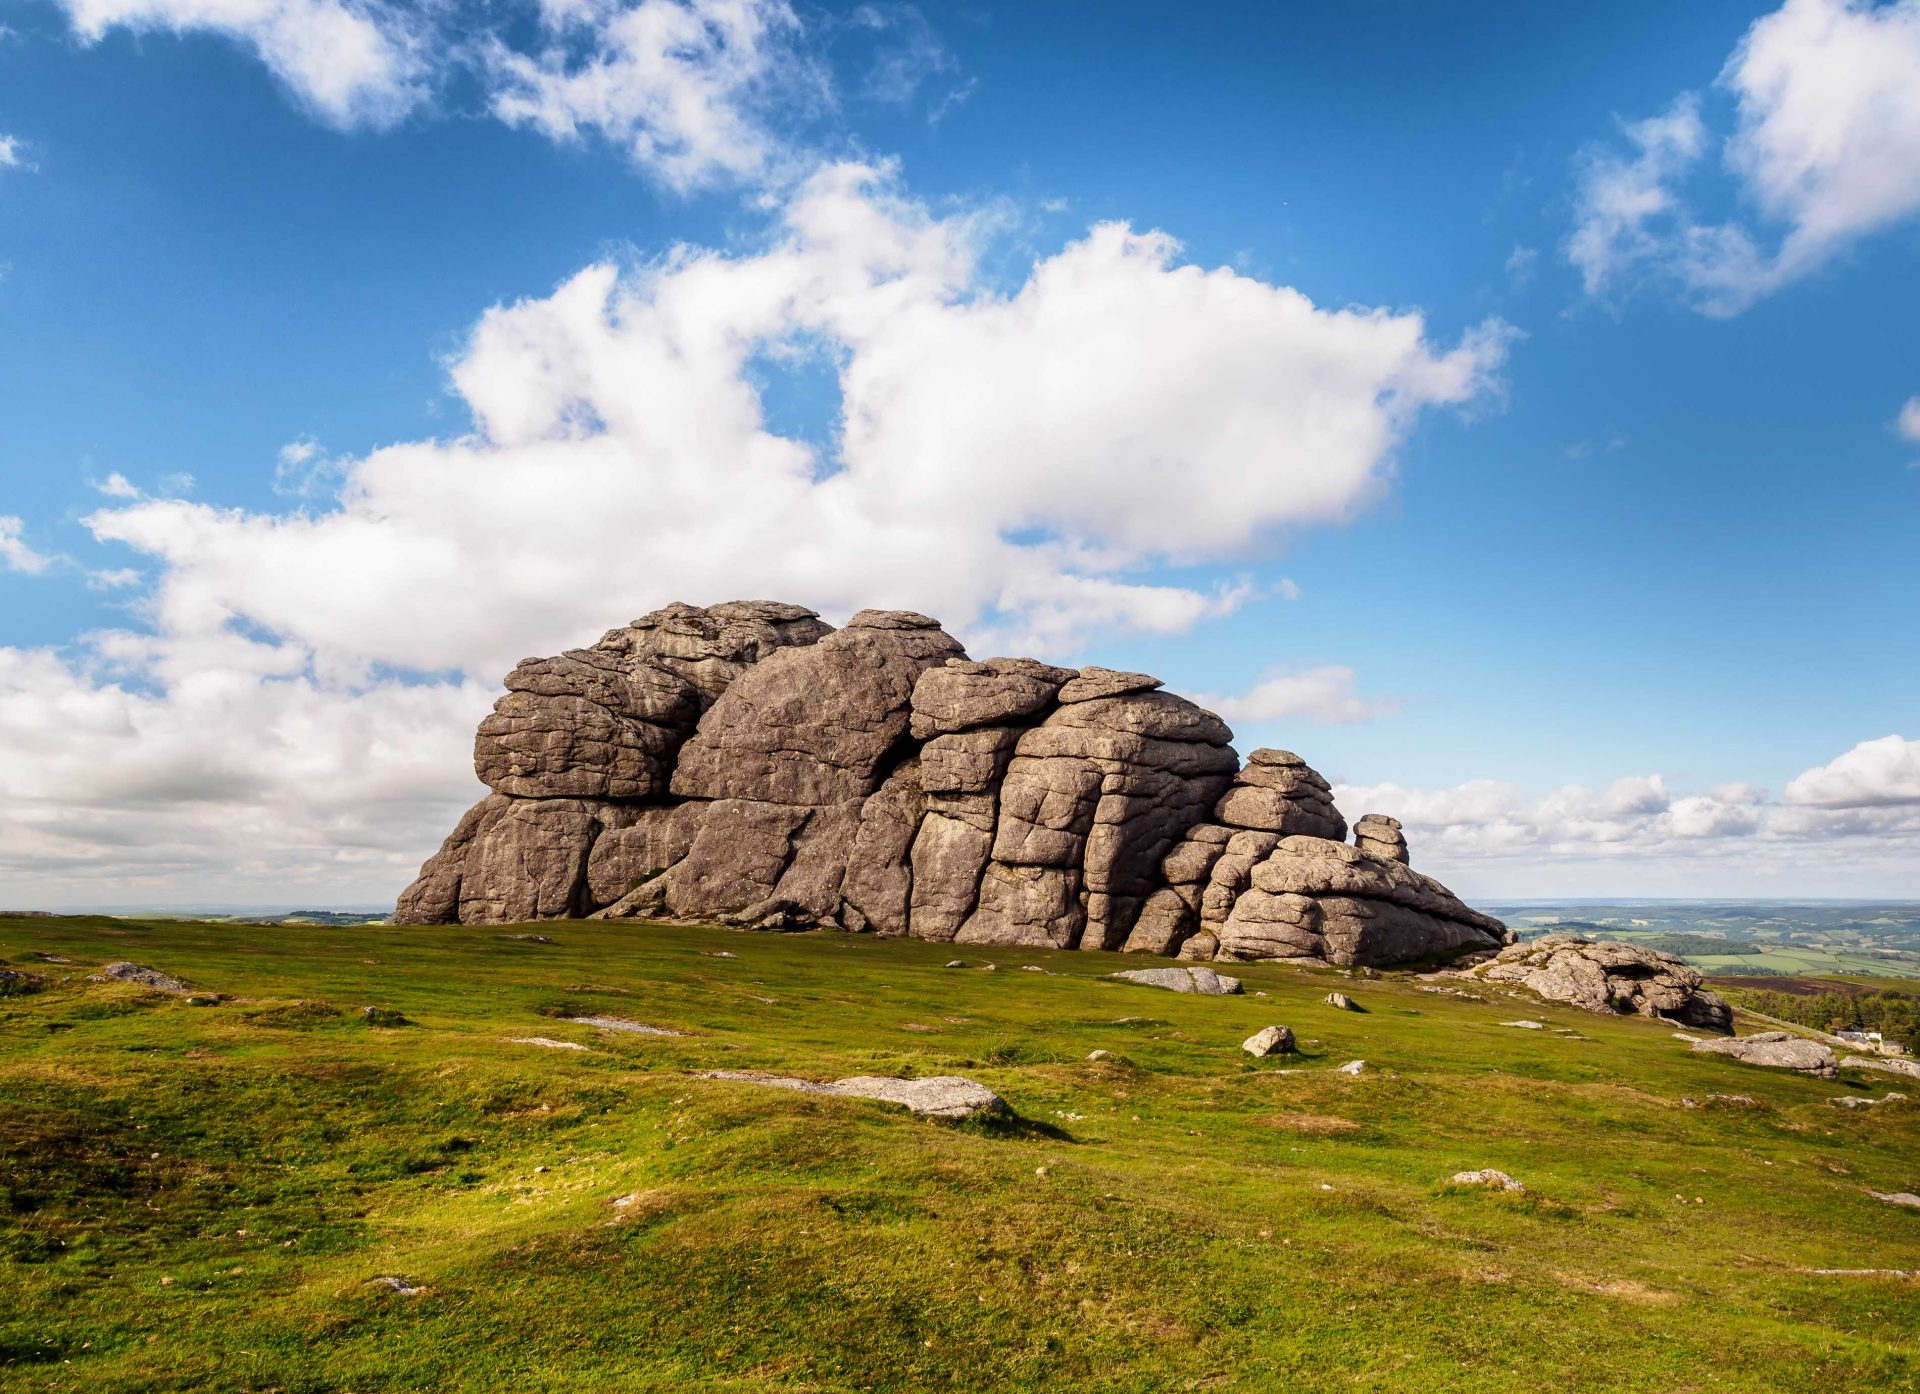 Haytor - One of Dartmoor's most famous beauty spots